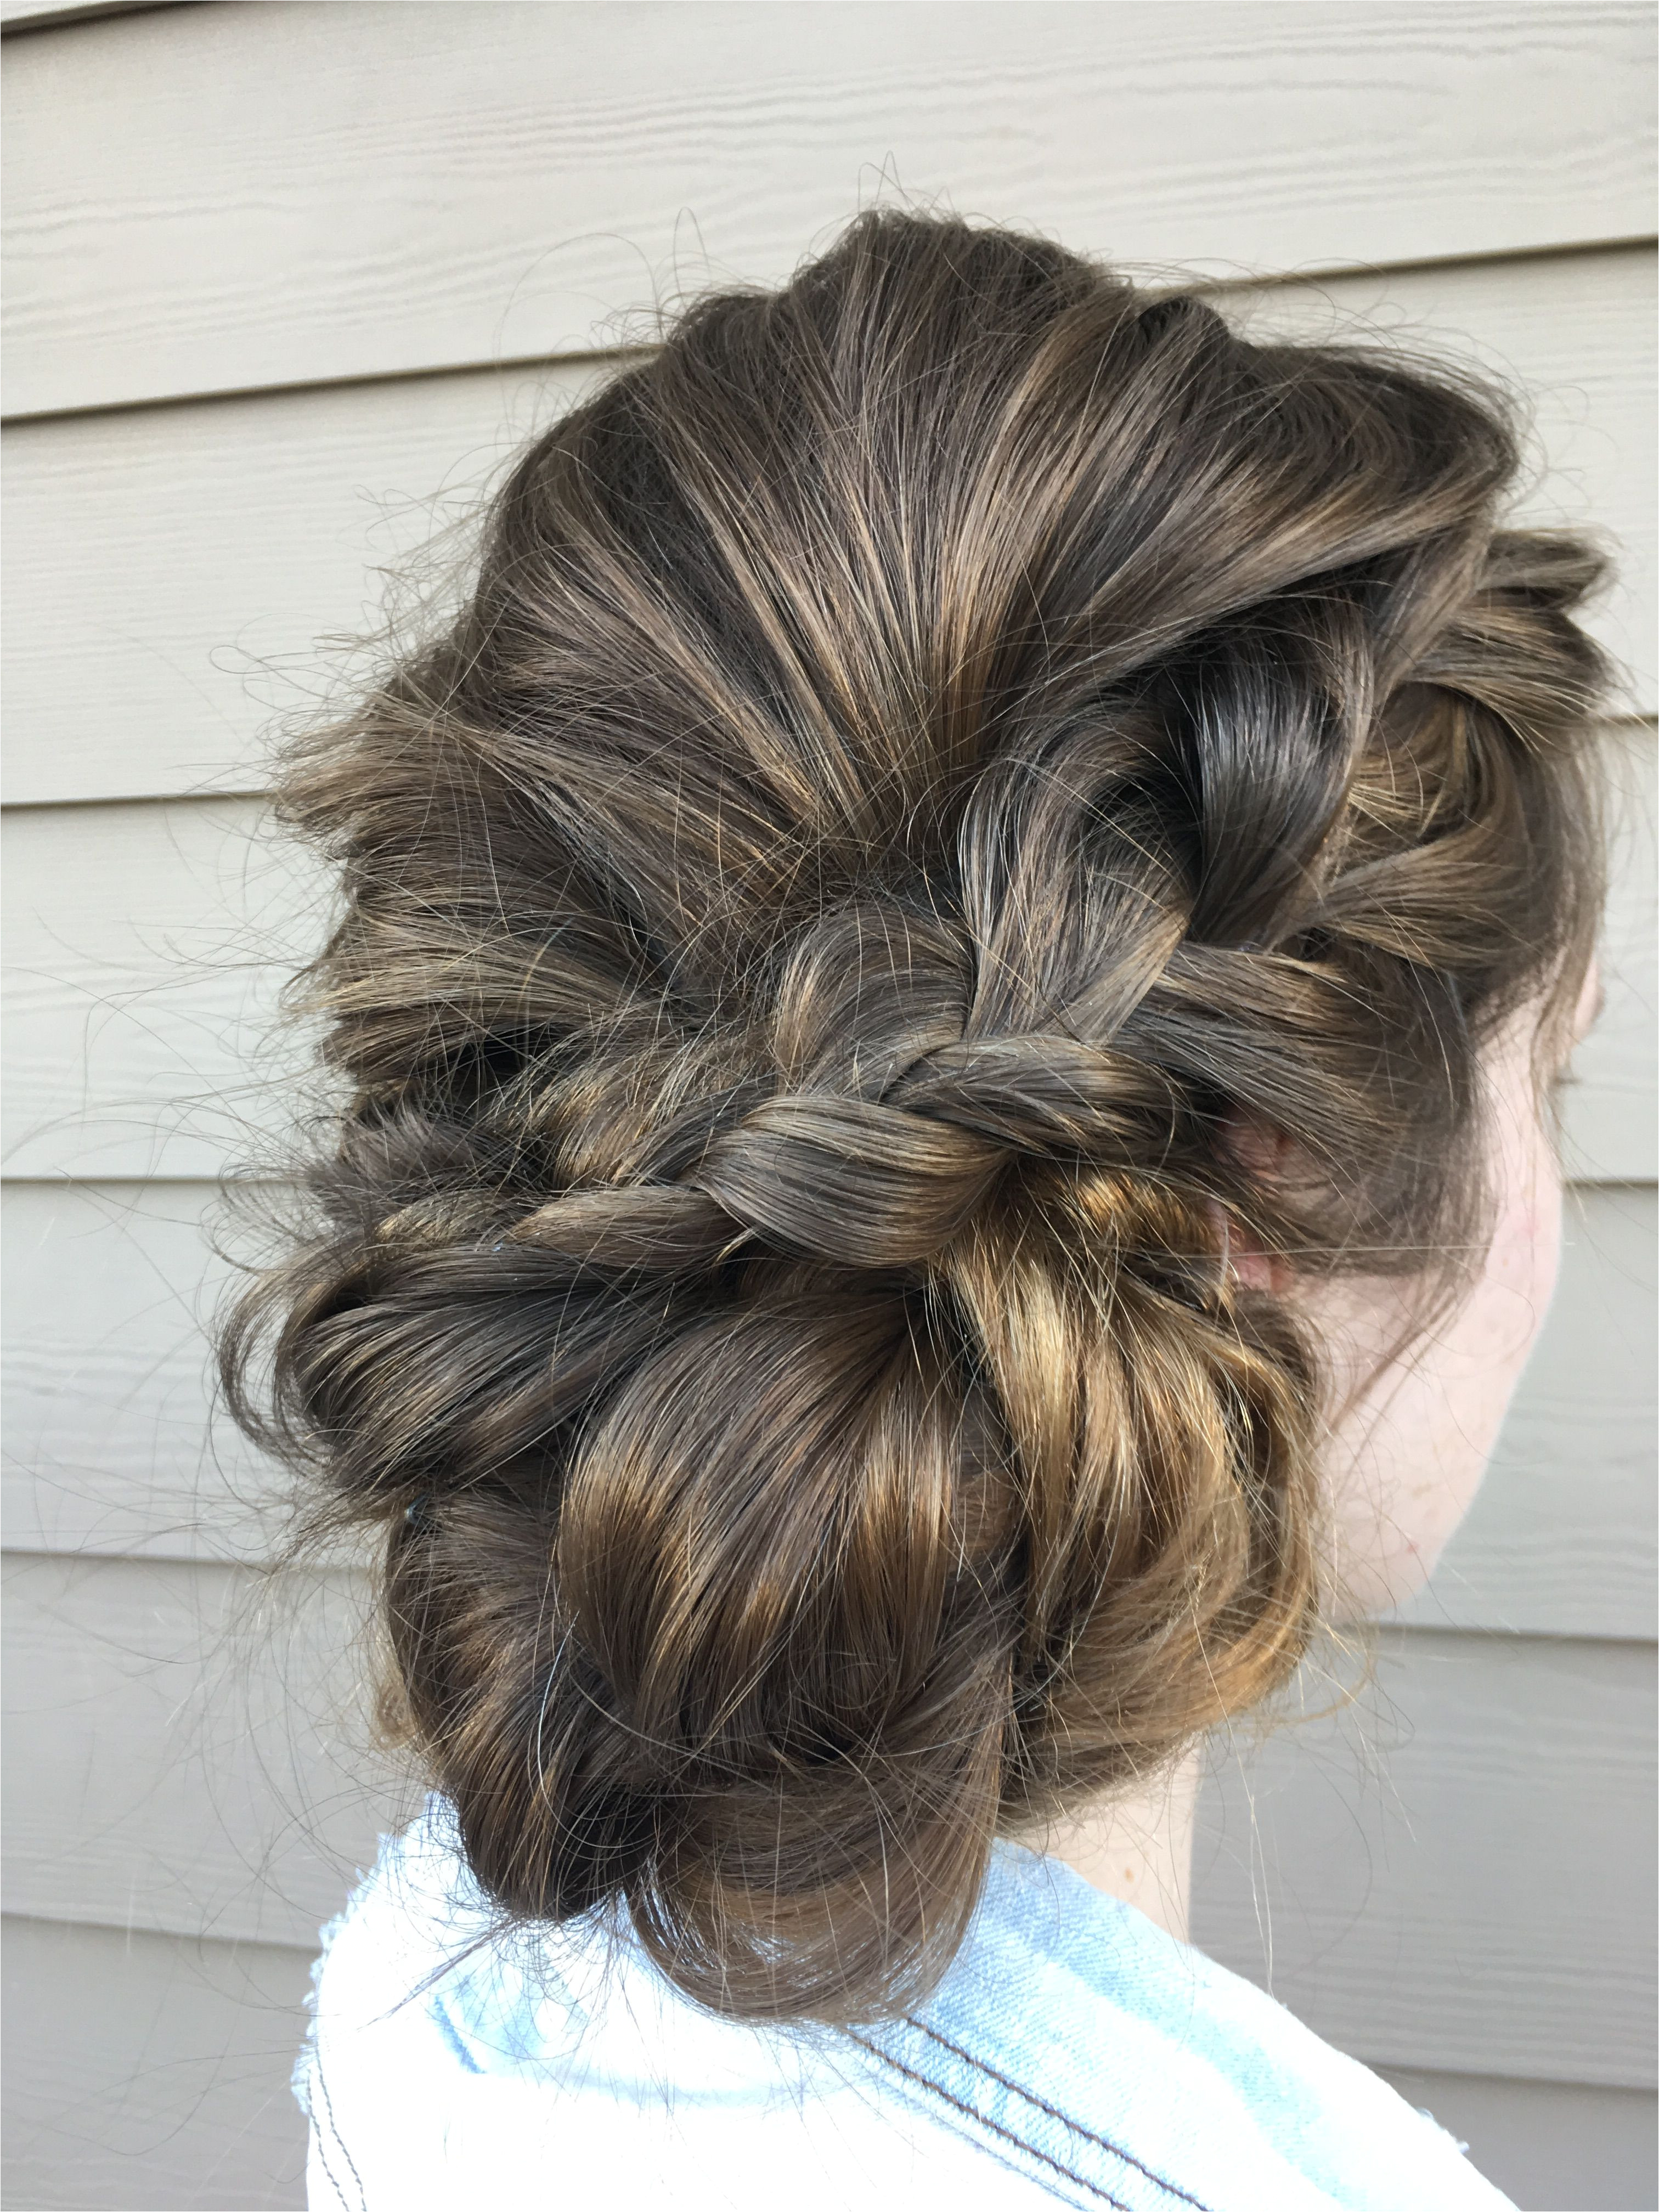 Braided updo Wedding Hairstyles For Long Hair Formal Hairstyles Braided Updo Braided Hairstyles